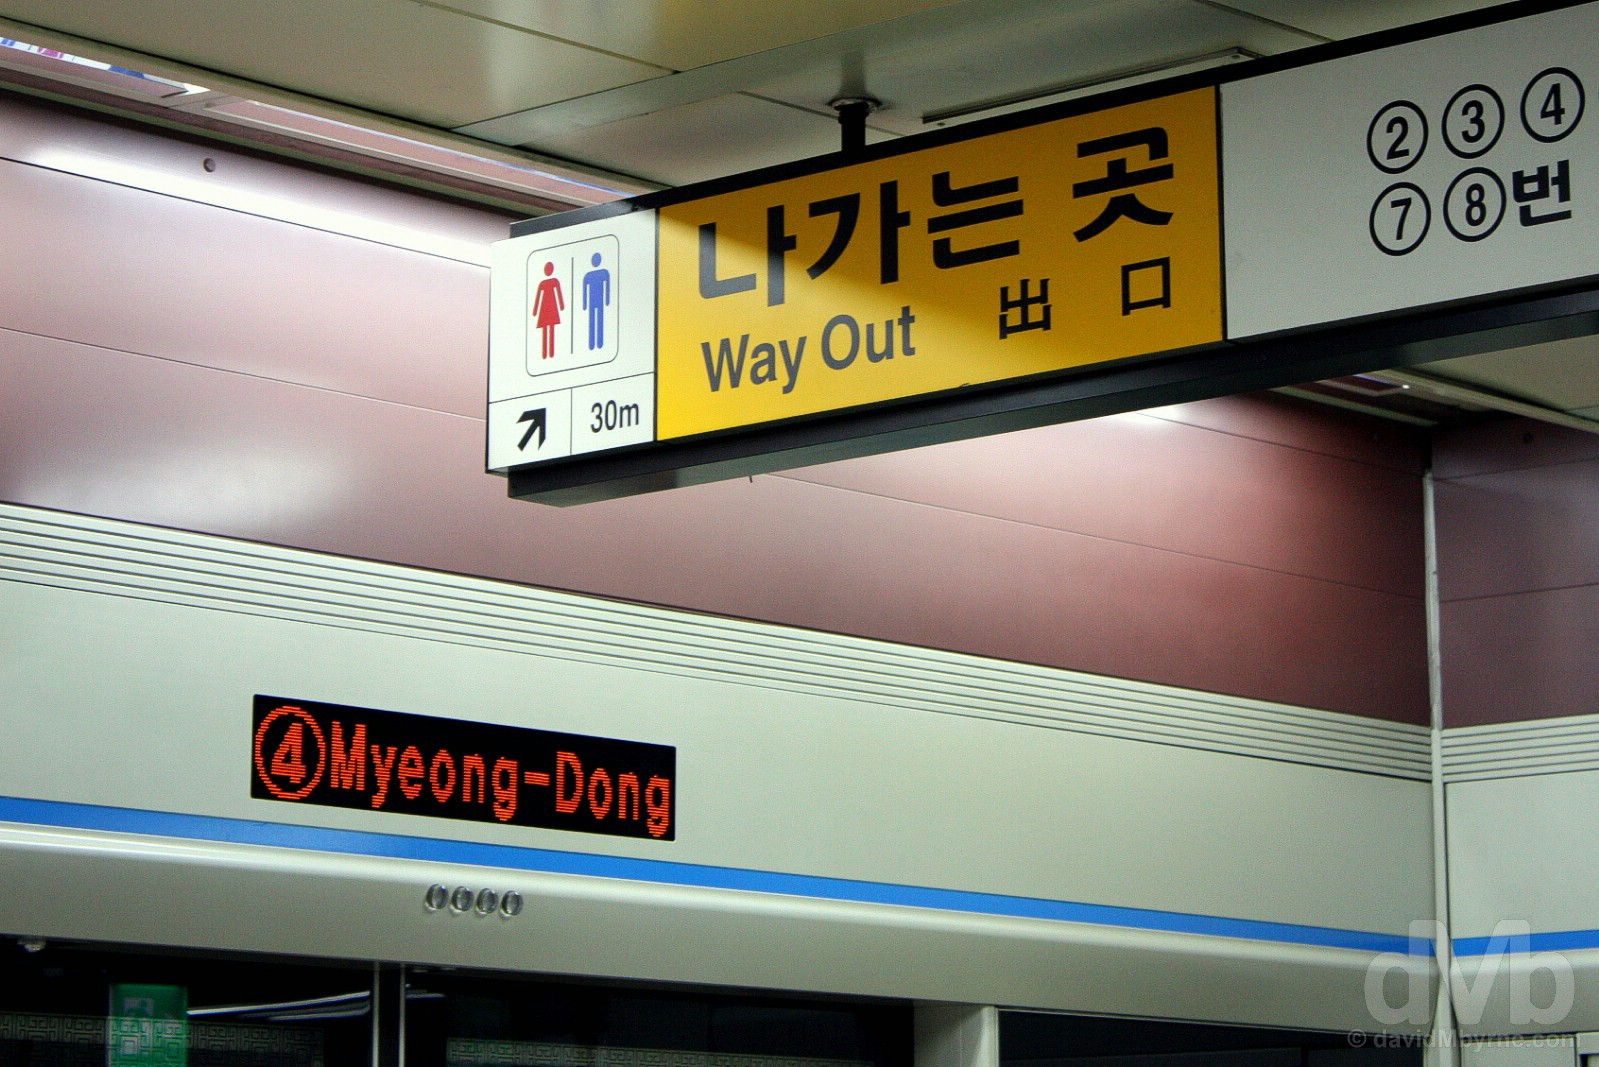 Myeong-dong Metro Station, Seoul, South Korea. July 8, 2008.